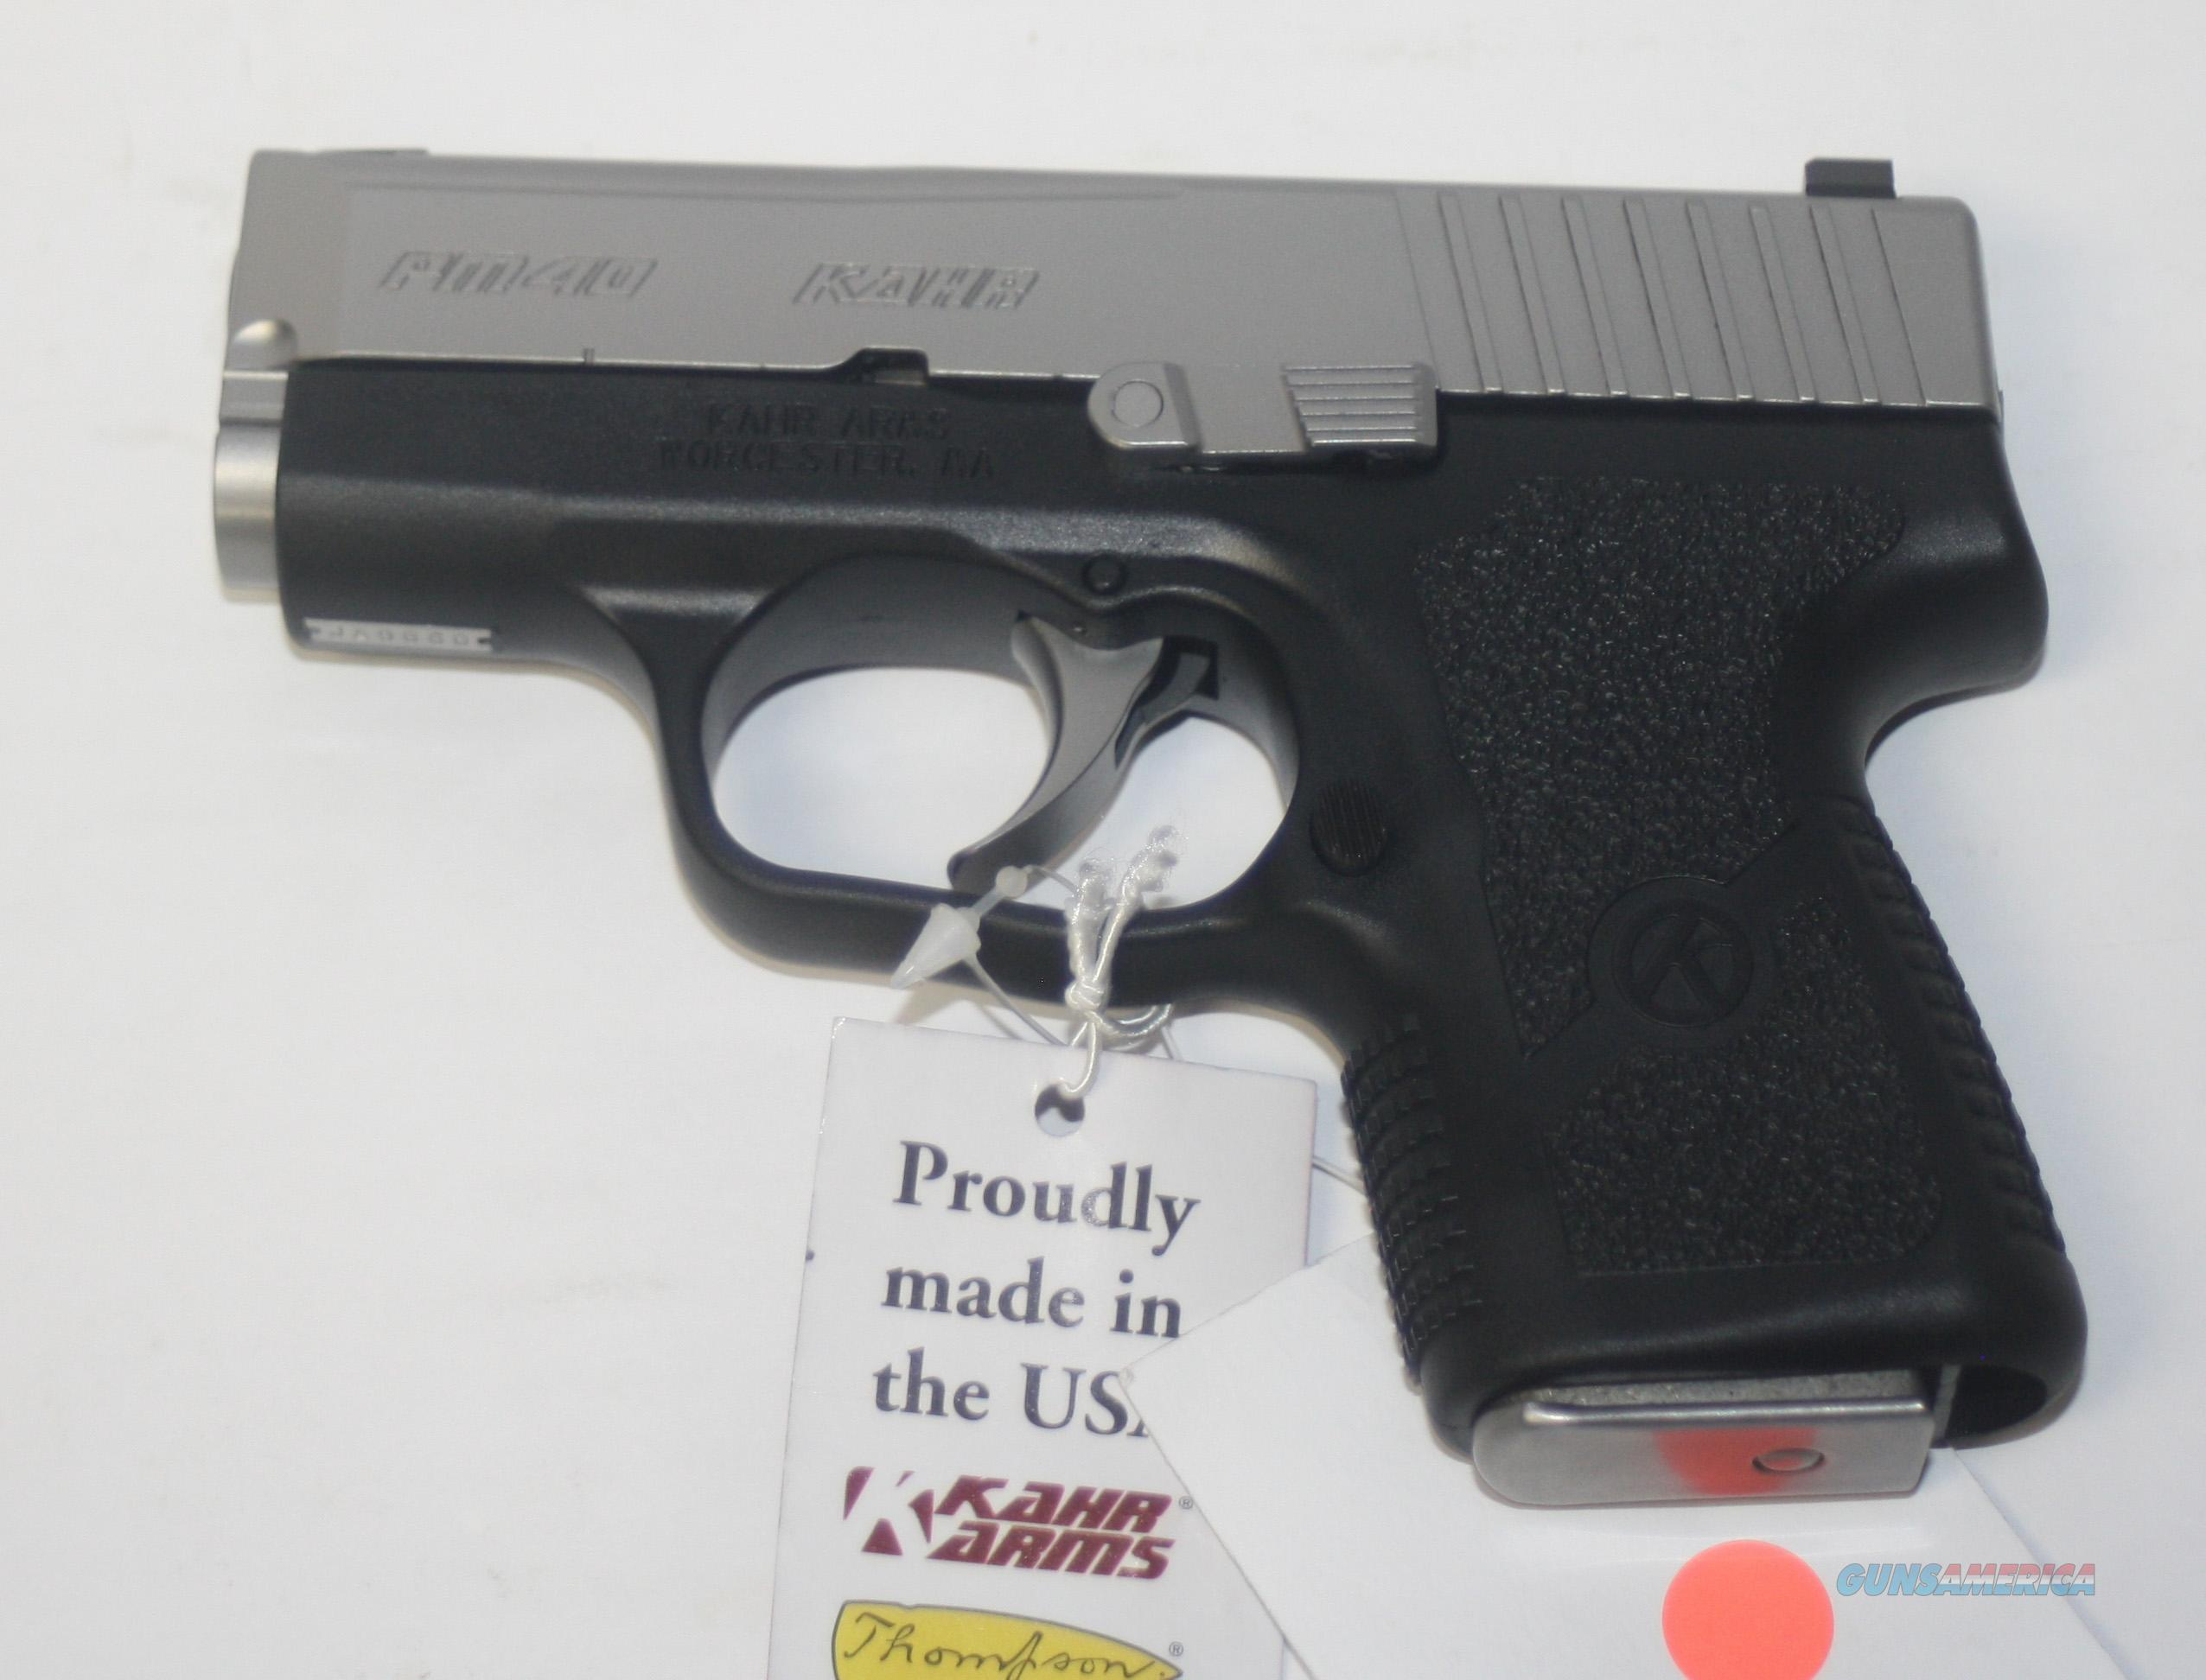 KAHR ARMS PM4043N MODEL PM40 40 S&W CONCEAL CARRY WITH NIGHT SIGHTS NEW IN BOX  Guns > Pistols > Kahr Pistols